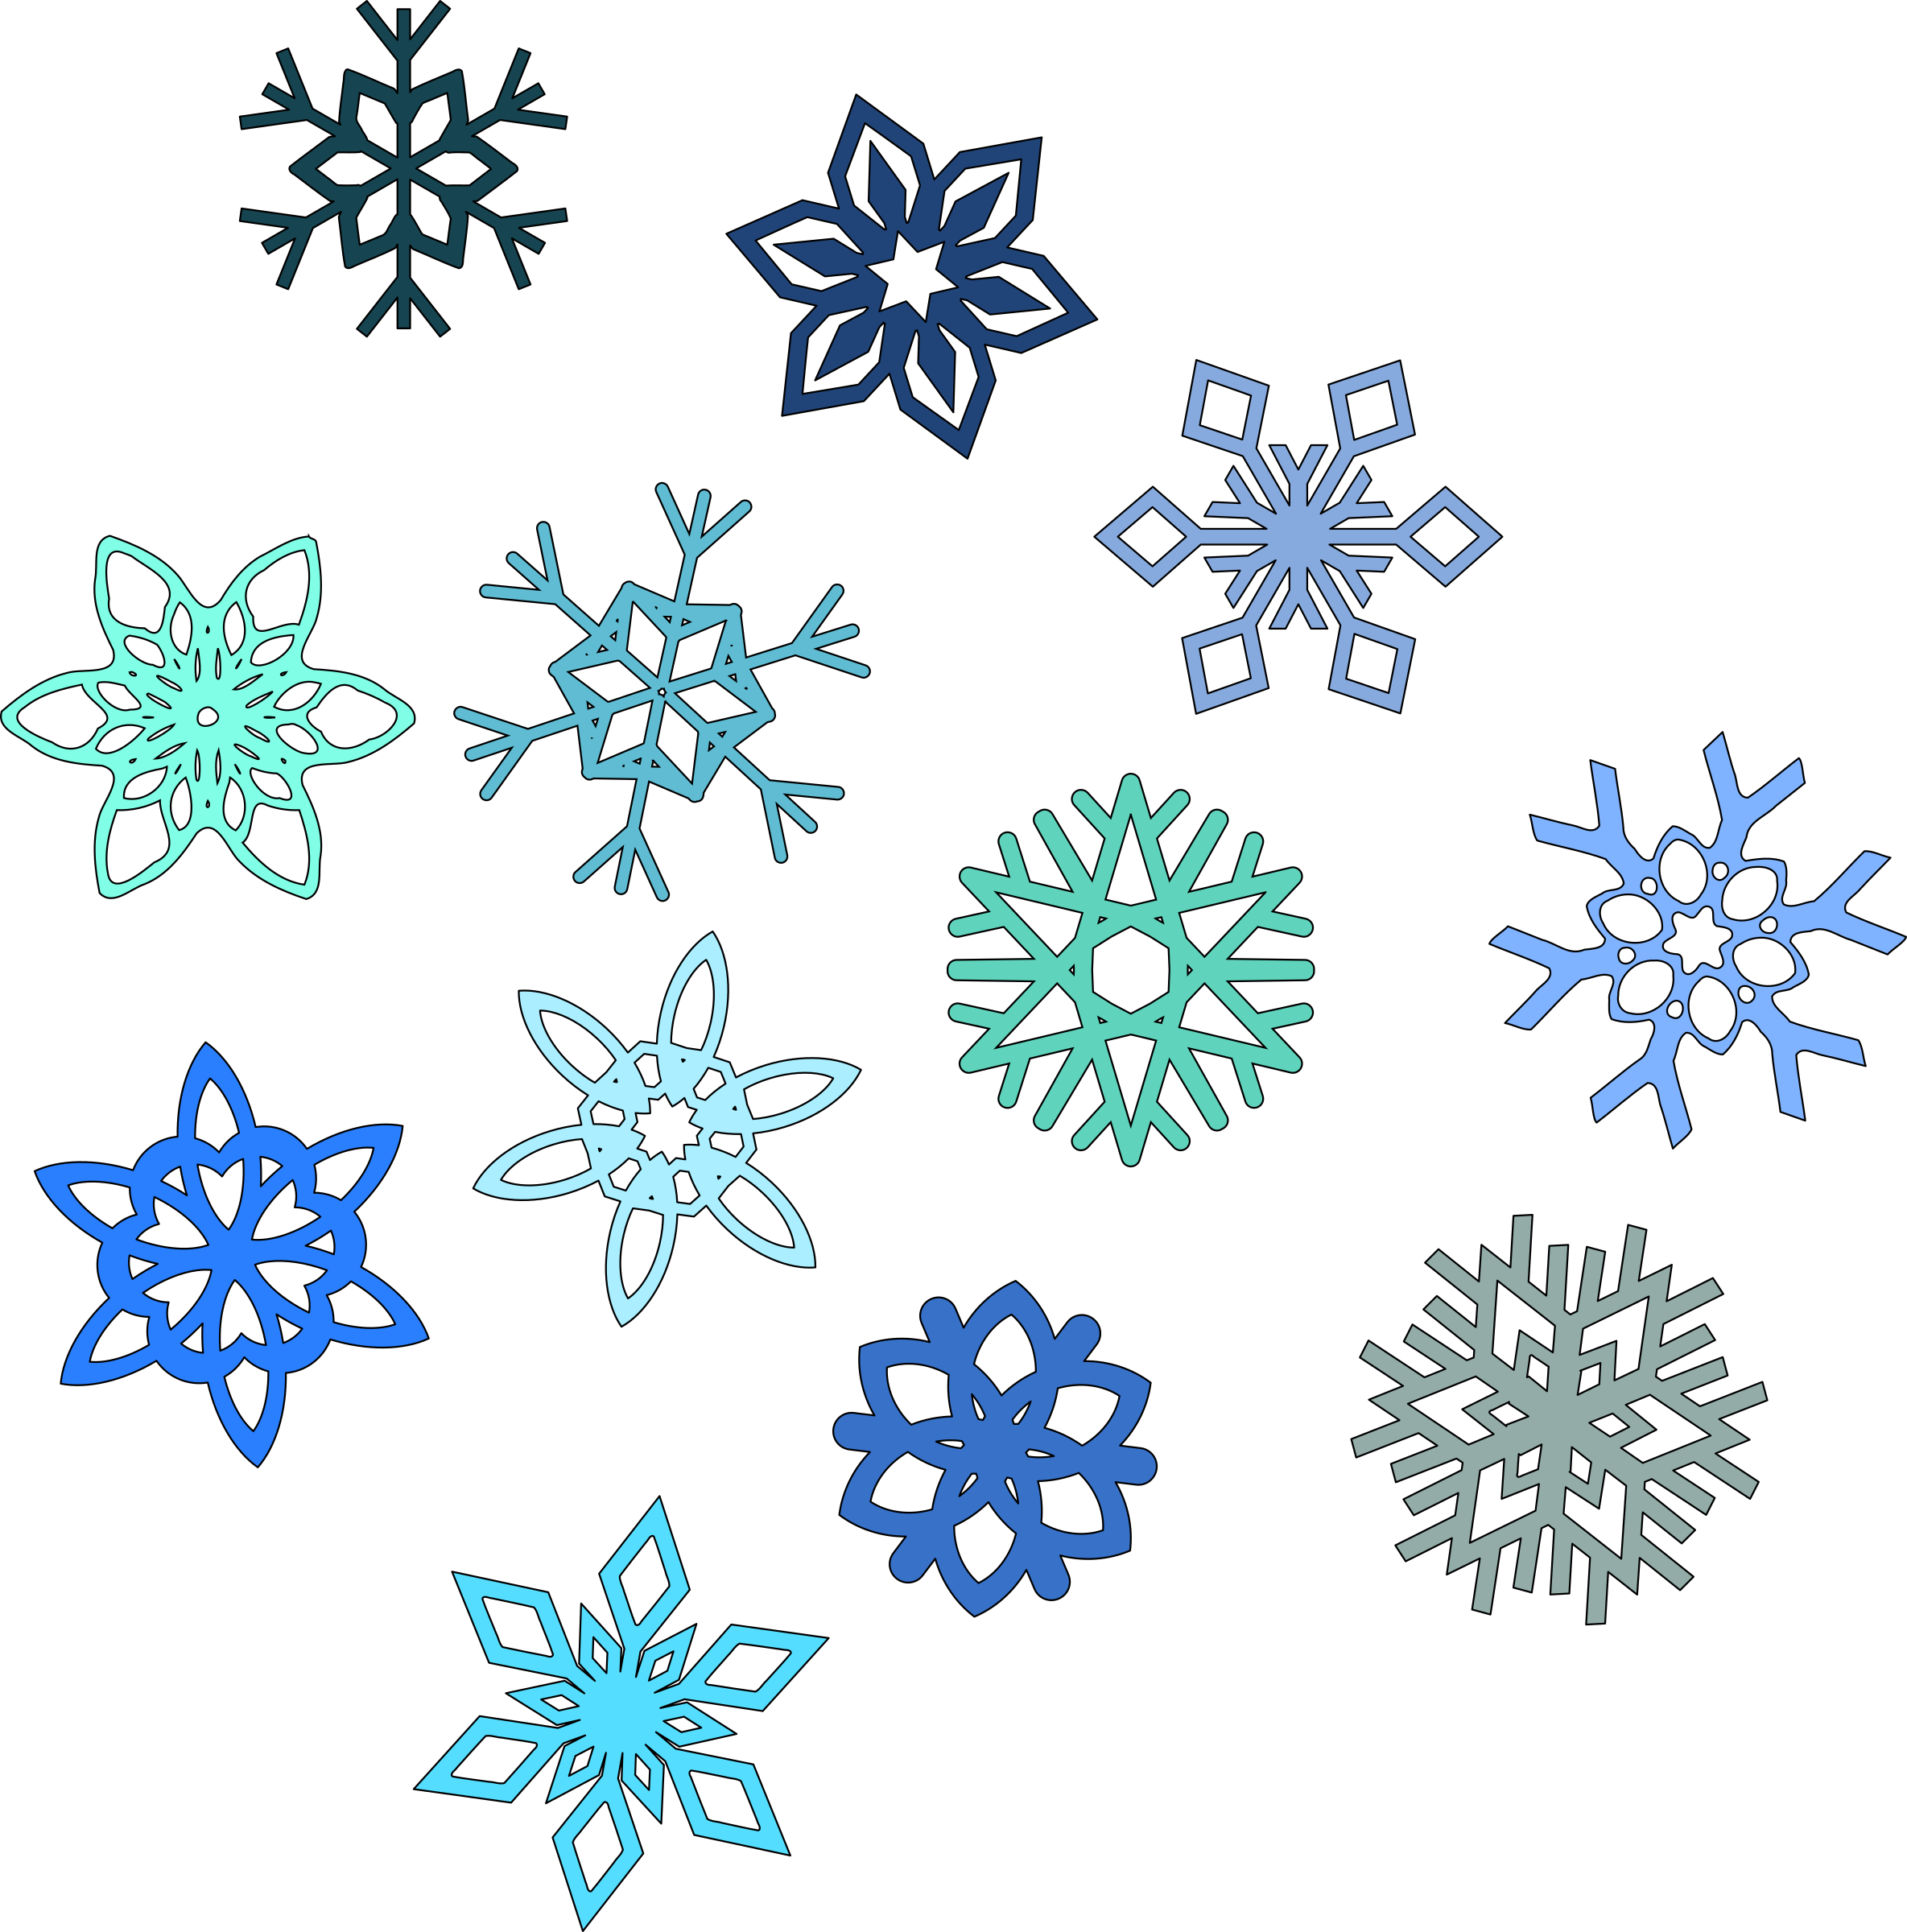 Blue snowflake free banner clipart banner royalty free stock Keeping a Snow Journal | Pinterest | Scrapbooking banner royalty free stock